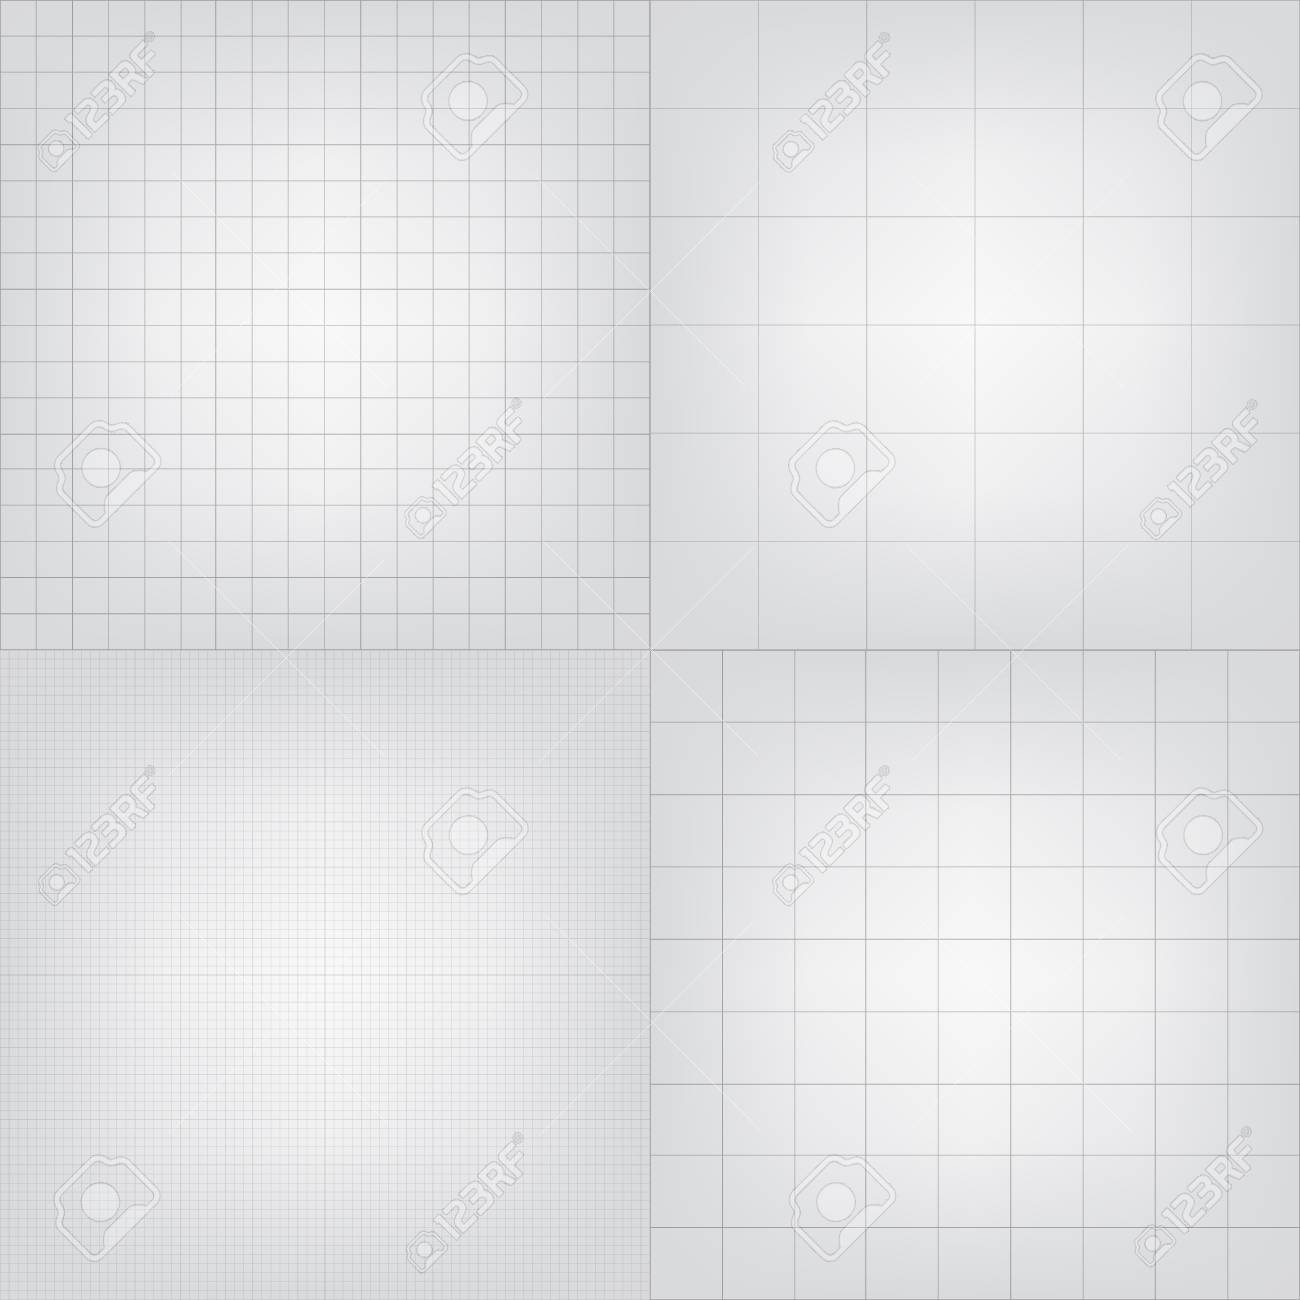 Set of blueprint graphing paper grid background vector eps10 set of blueprint graphing paper grid background vector eps10 format in different line styles stock malvernweather Choice Image